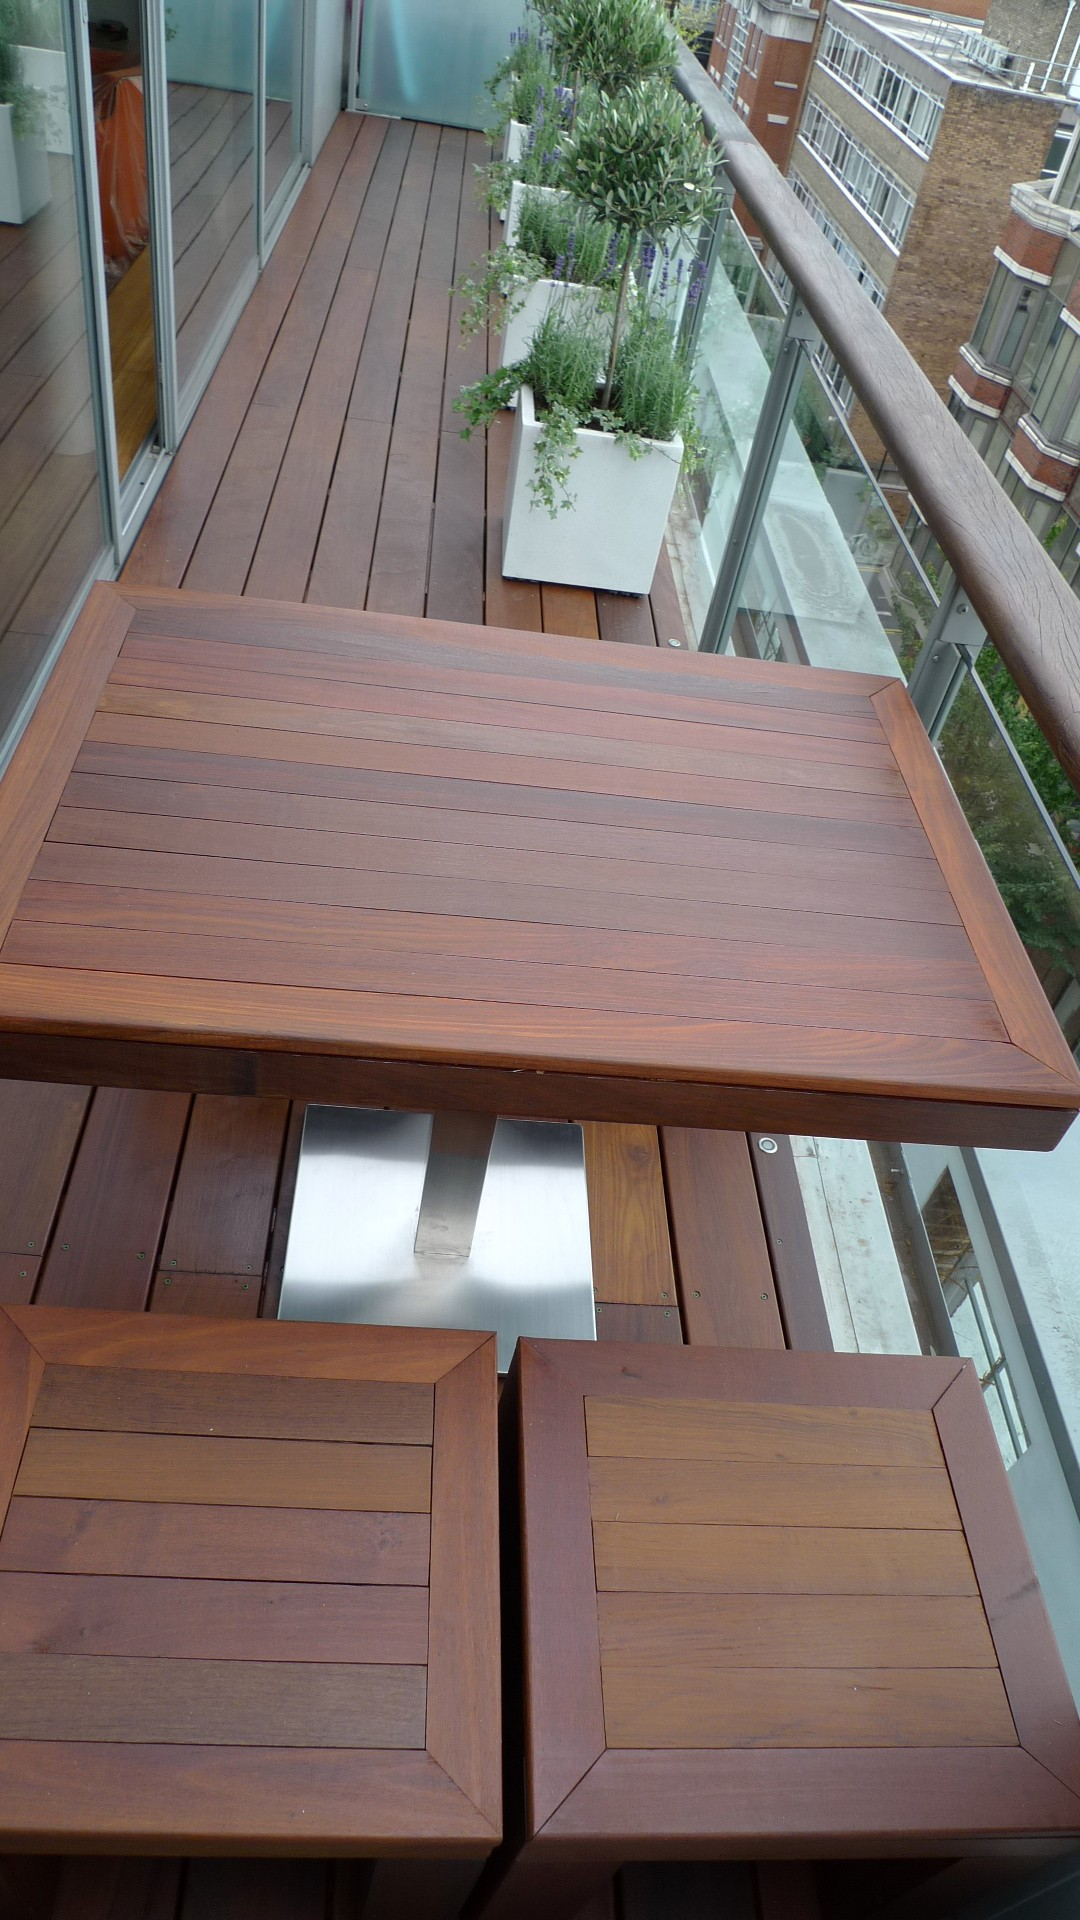 Ipe brazillian hardwood deck decking installation builders garden designers islington central london roof garden (10)